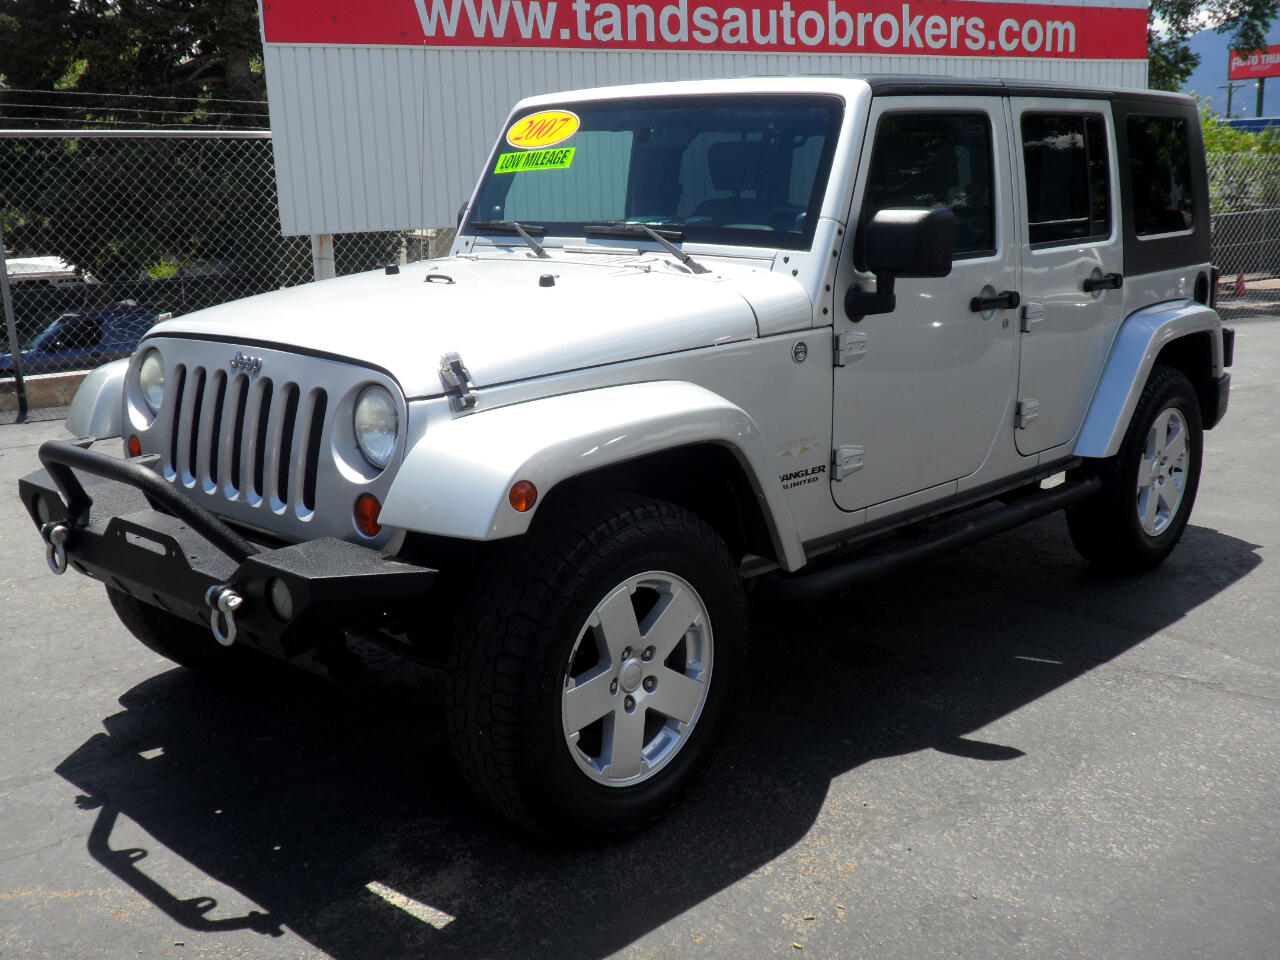 2007 Jeep Wrangler LOW MILE SAHARA UNLIMITED